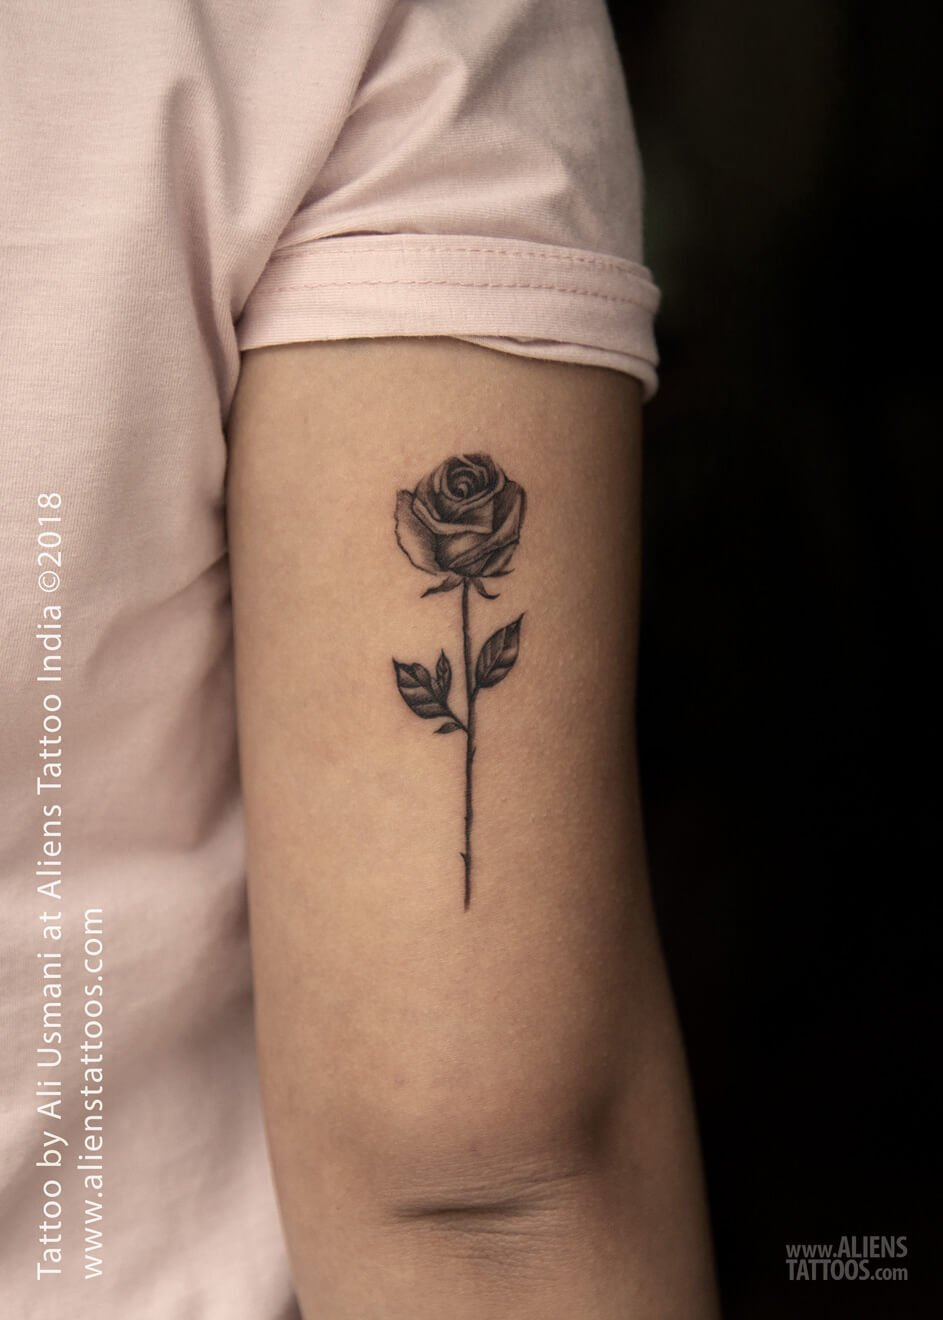 A minimalist blackwork tattoo of a black rose